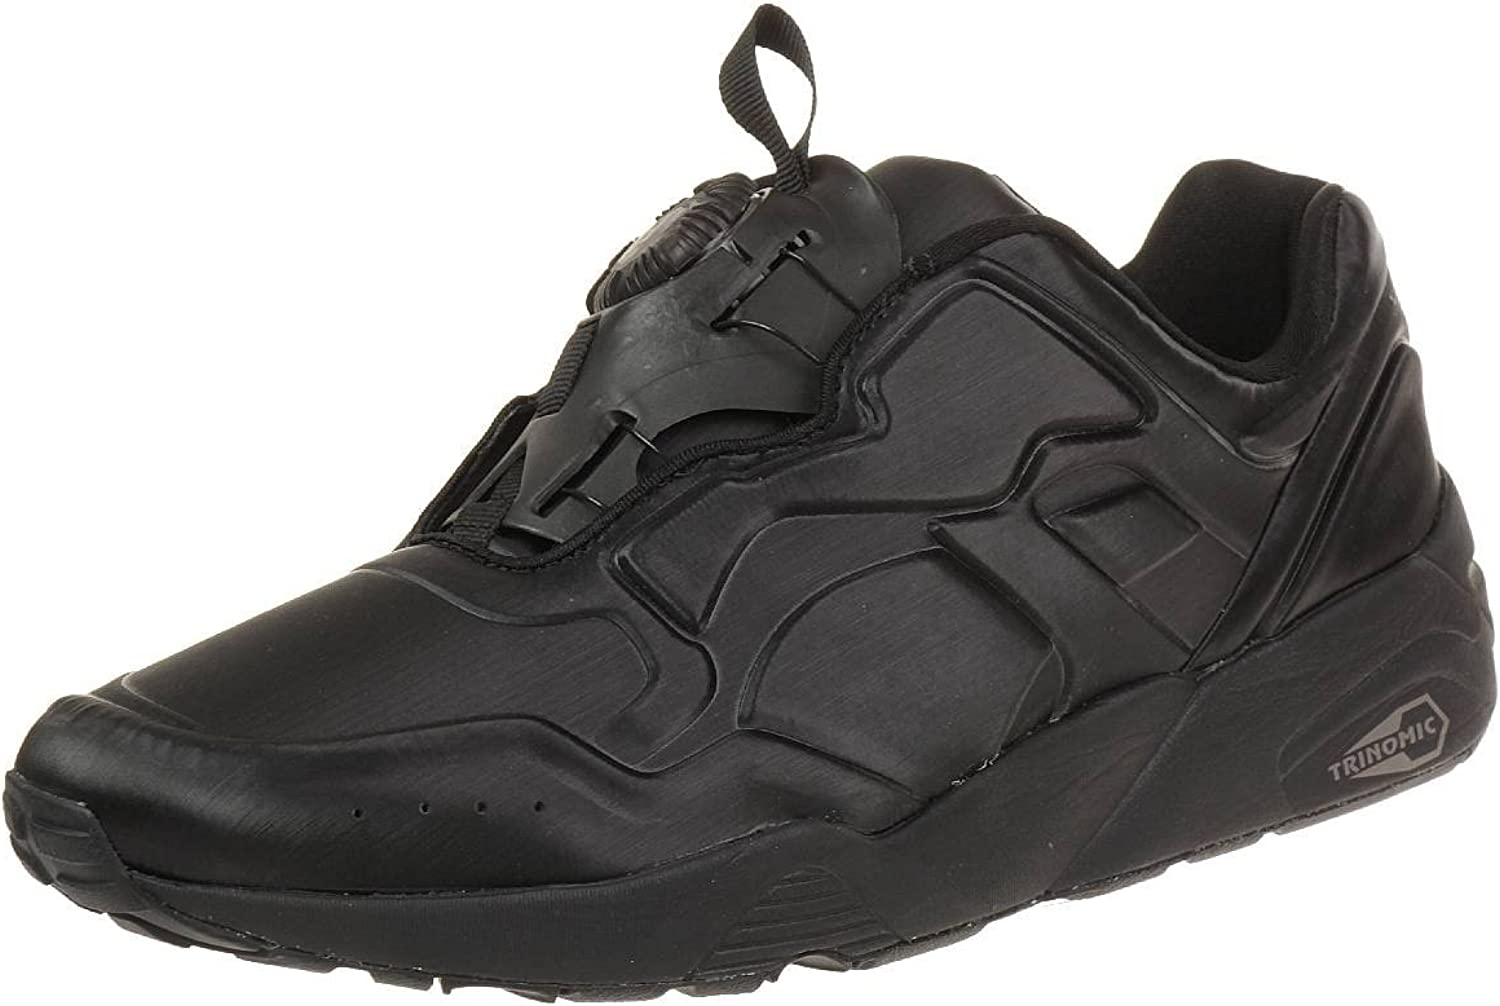 Puma MY-89 DISC Black Unisex Sneakers shoes Trinomic